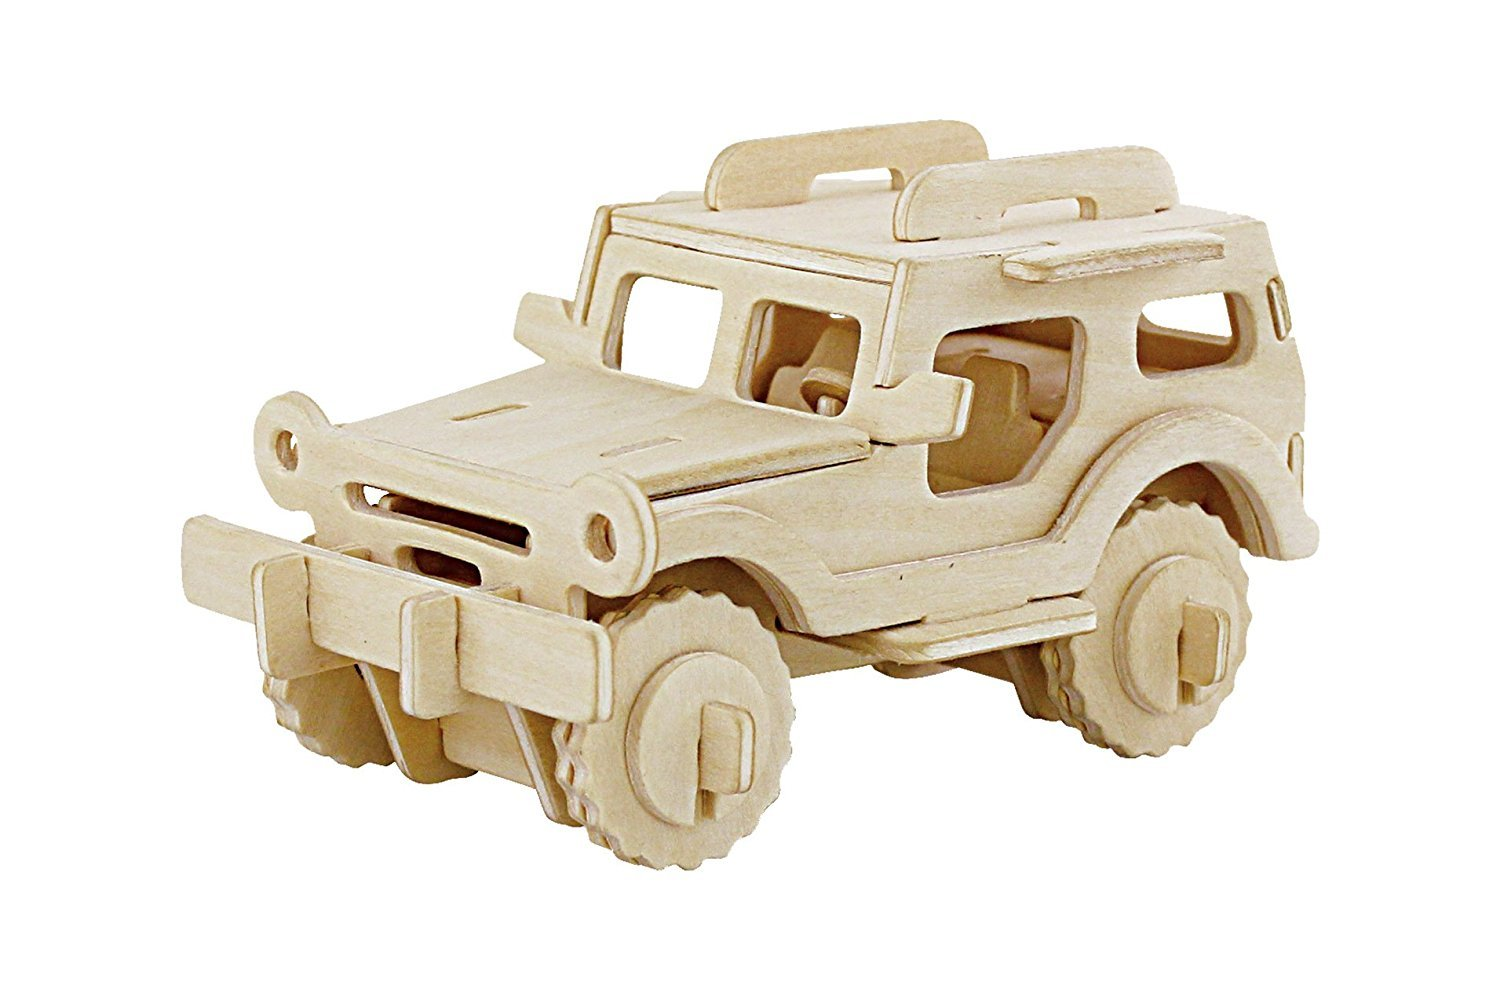 3D Wooden Model Toy Kit World Puzzle Build Car Kit Wooden 3d Puzzles Build Car Kit Kids Wooden Puzzle Car Model Kits 38-pcs (Jeep)